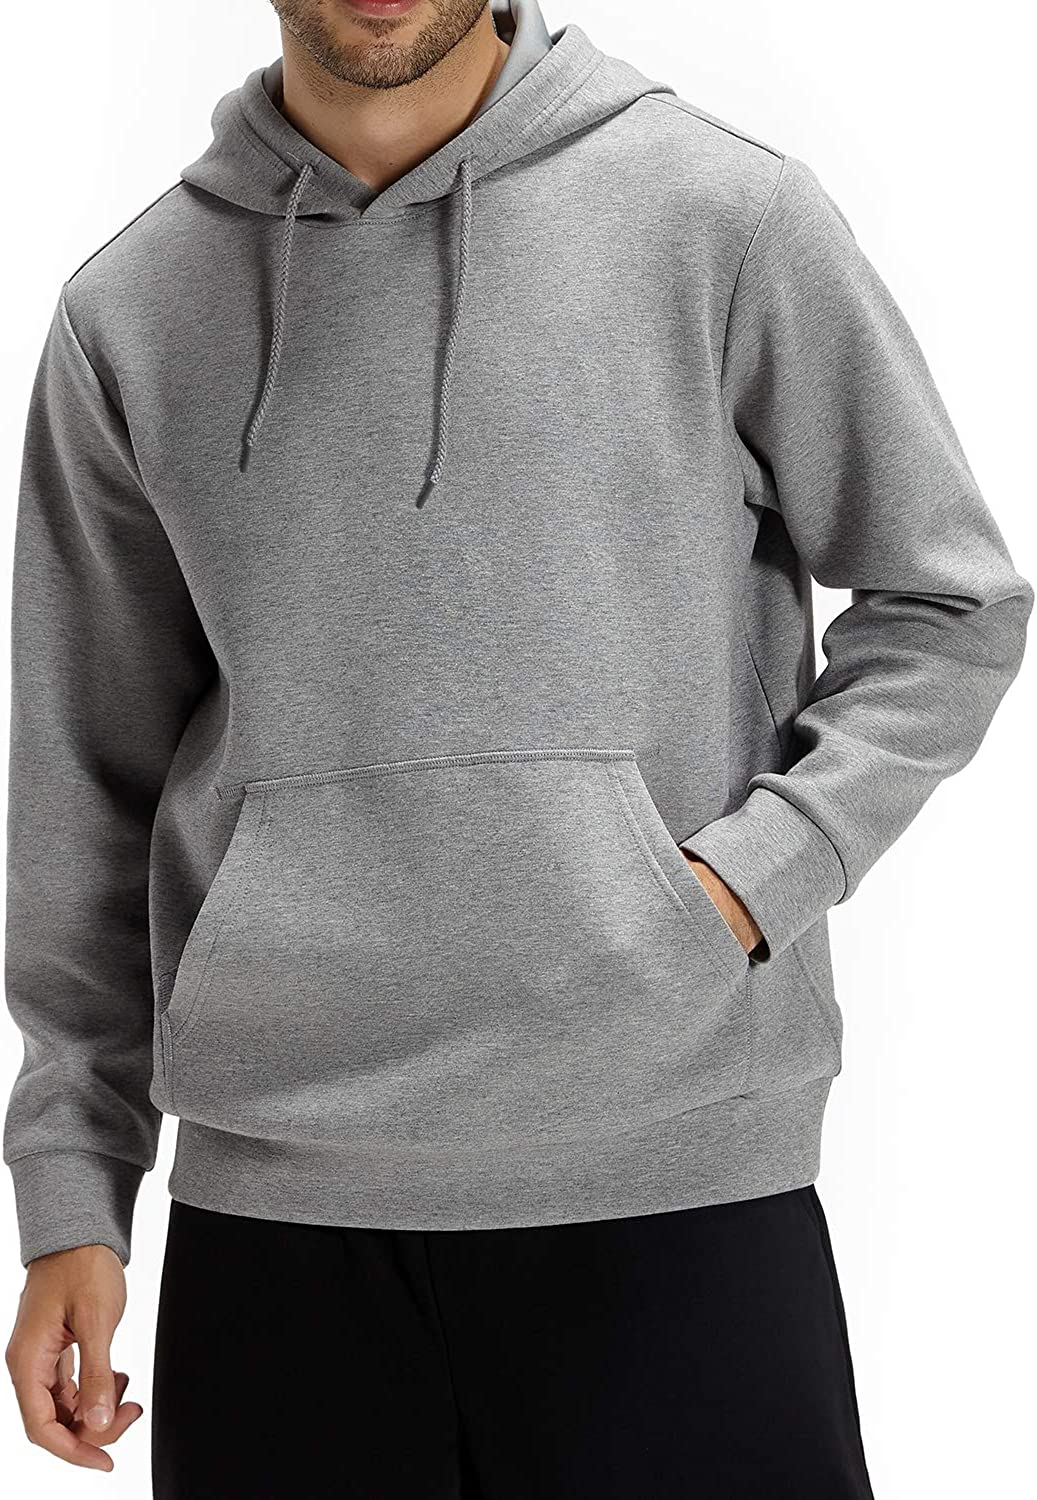 CASEI Solid Hoodies for Men Athletic Pullover Hoodie Lightweight Sweatshirt with Pockets